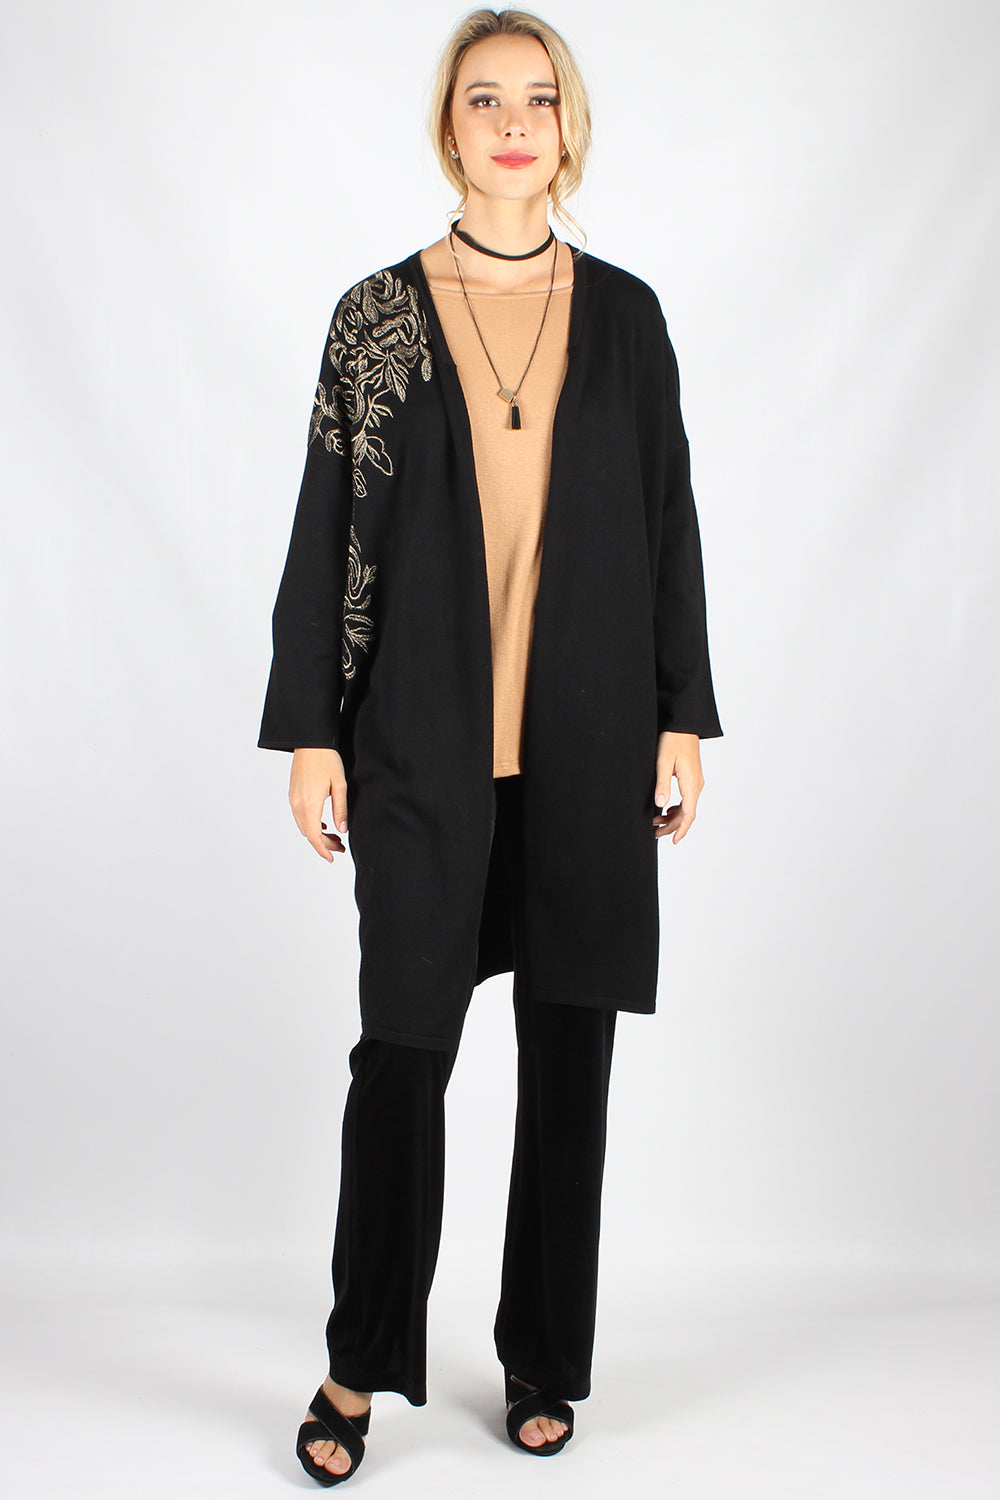 WW0058NC Long Sleeve Cardigan With Side and Shoulder Detailing (Pack)